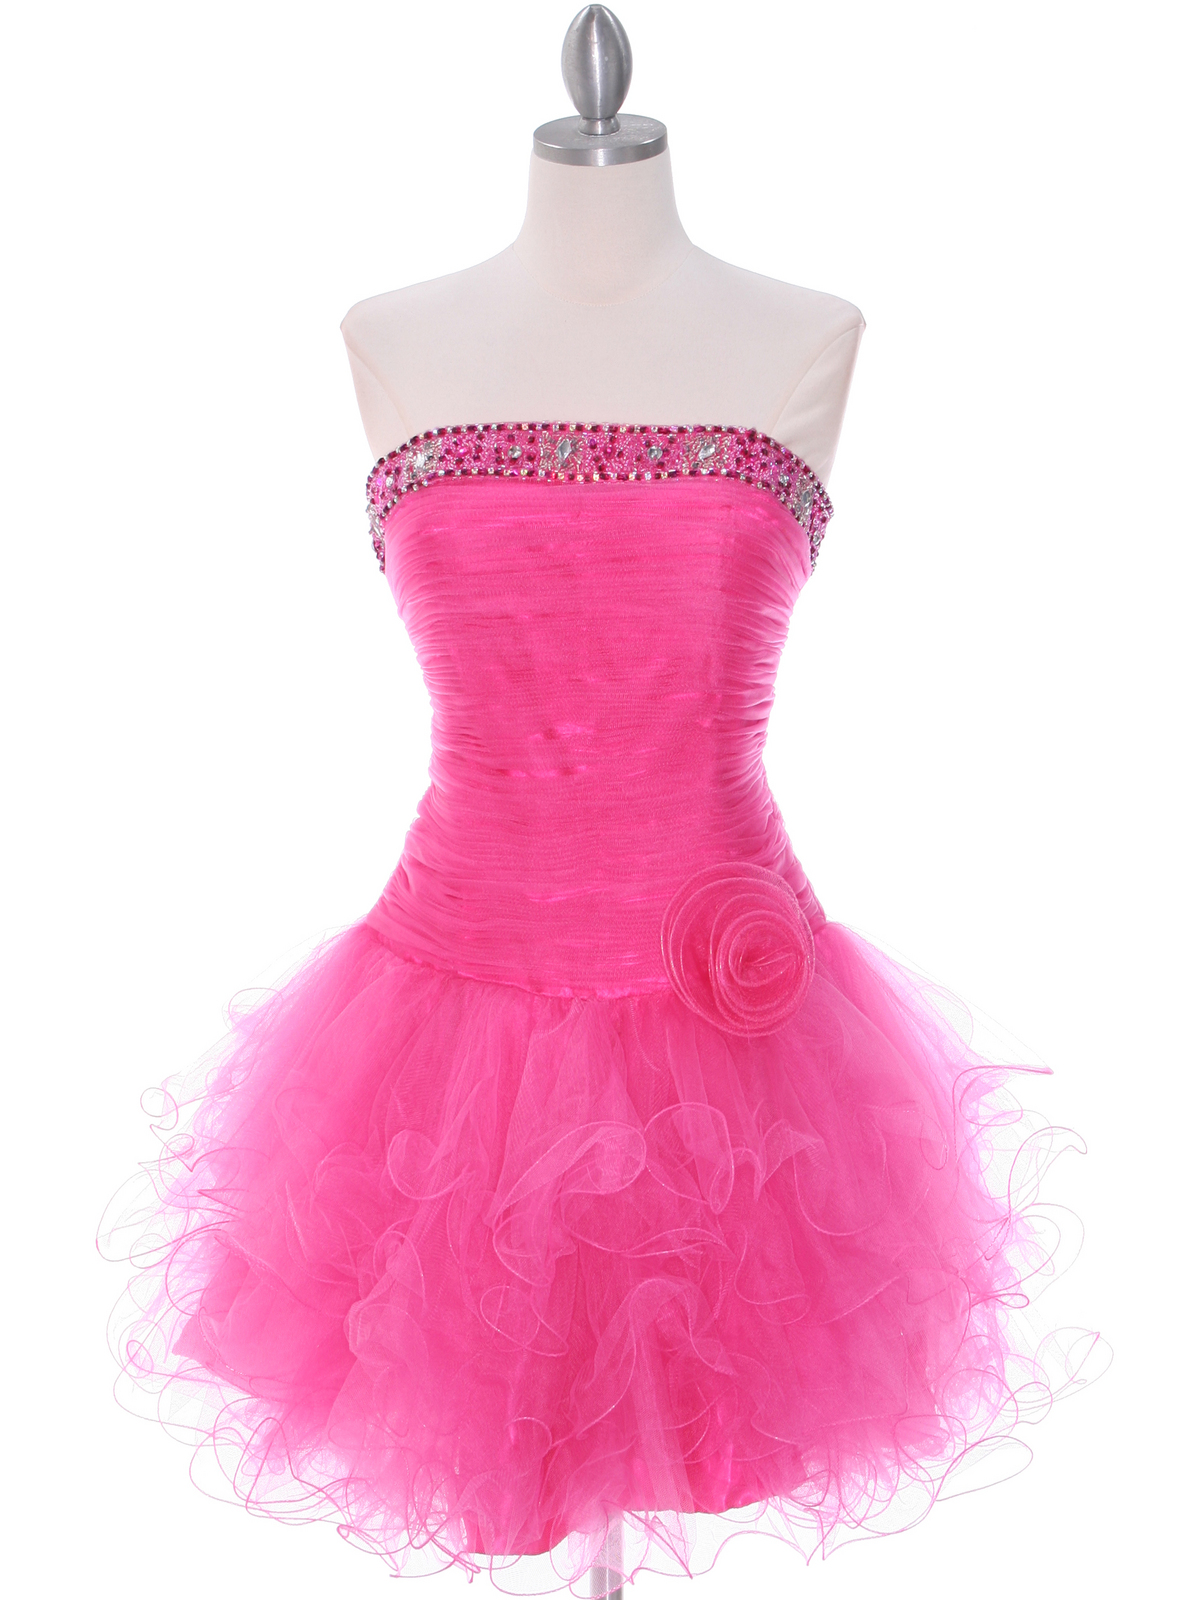 Homecoming Dresses, Short Dresses and Homecoming Gowns at PromGirl